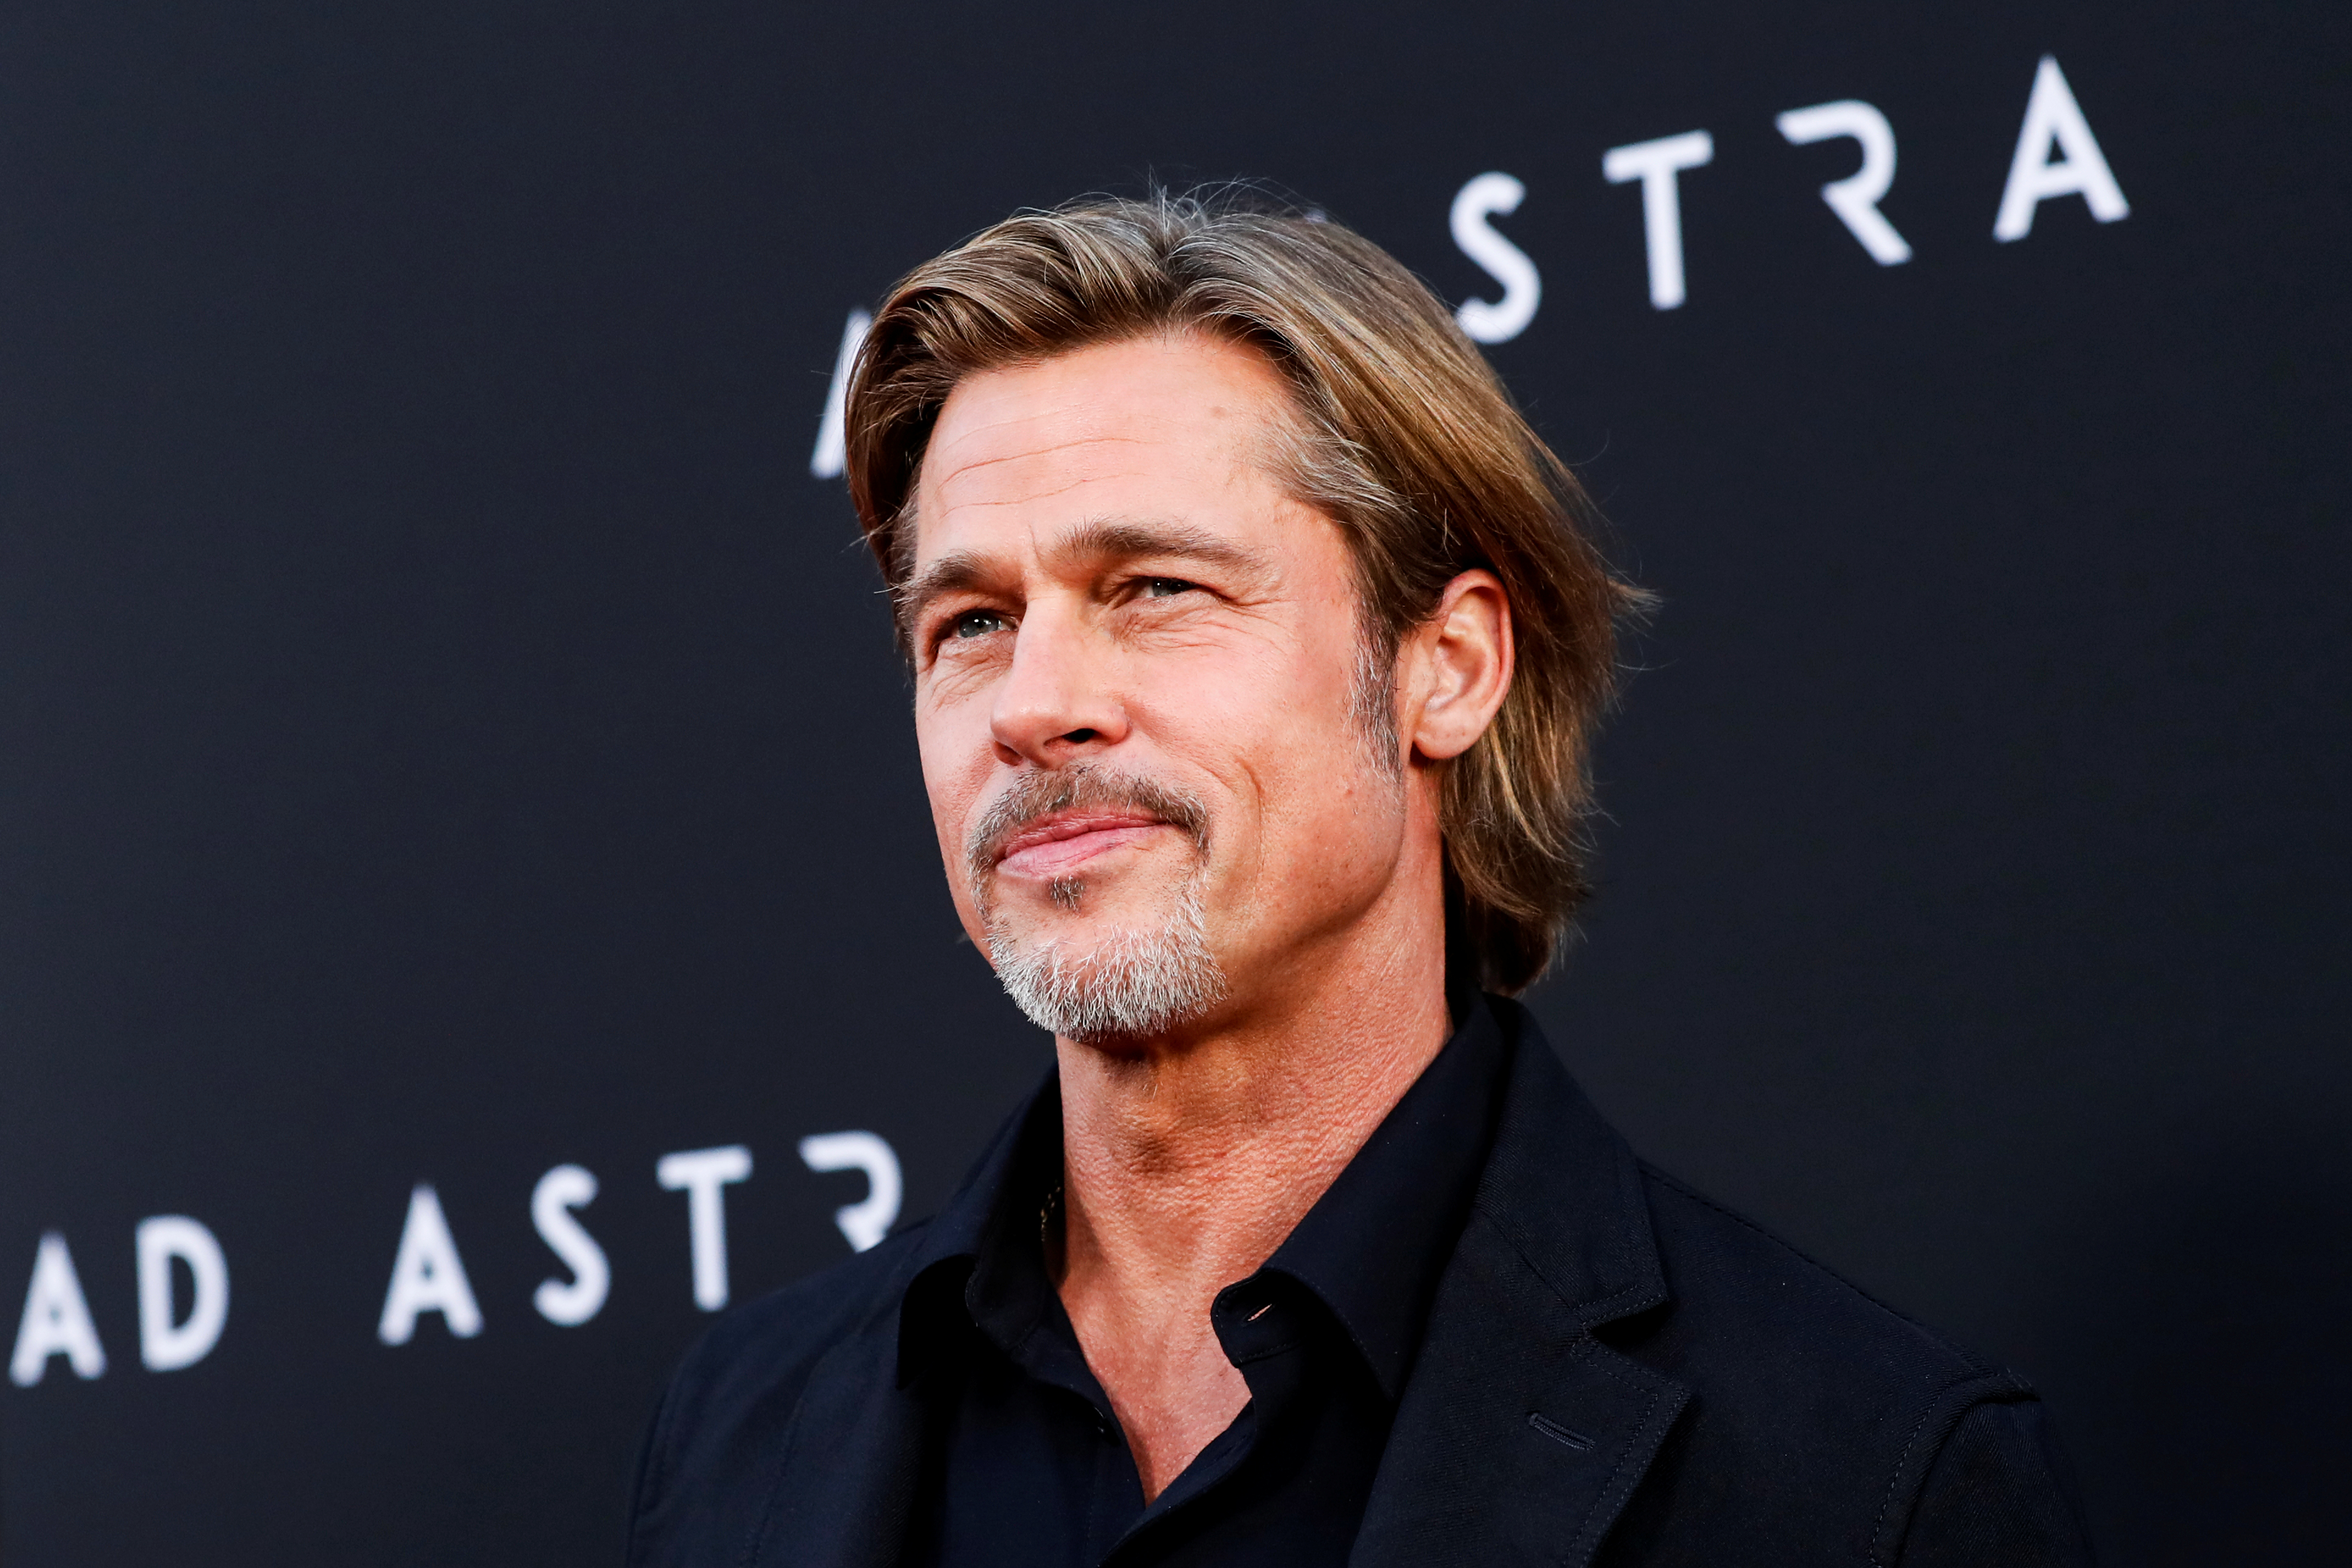 """Cast member Brad Pitt poses at the premiere for the film """"Ad Astra"""" in Los Angeles, California, U.S., September 18, 2019. REUTERS/Mario Anzuoni"""